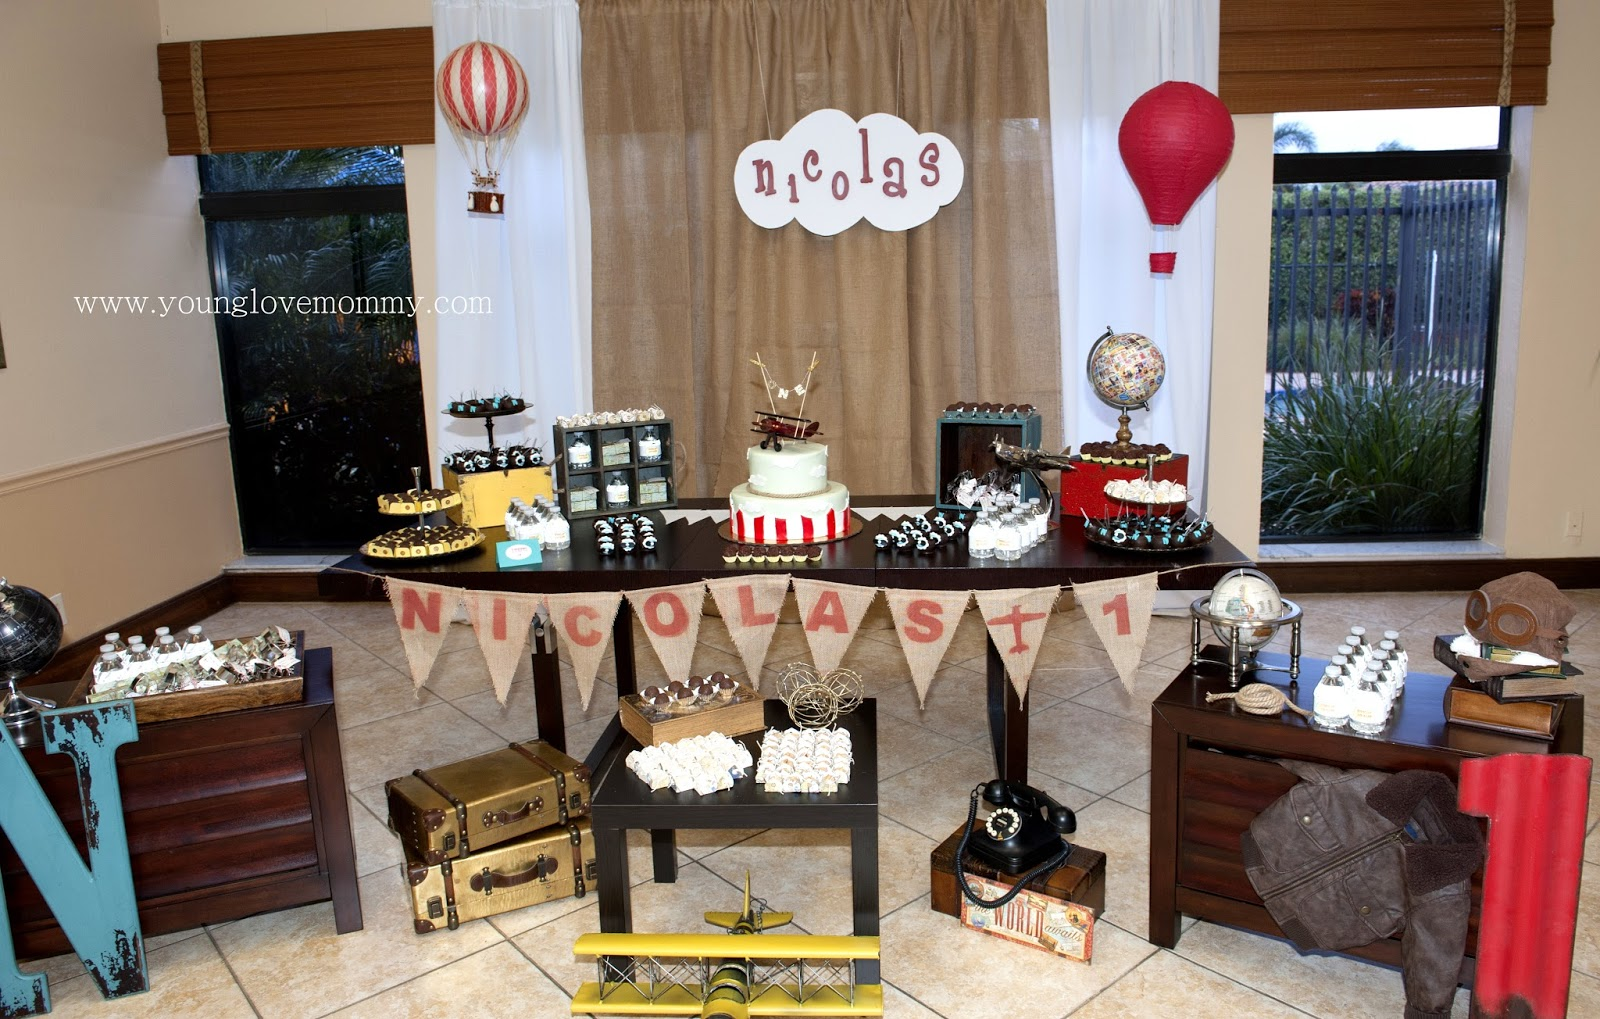 Vintage Airplane Party first birthday party